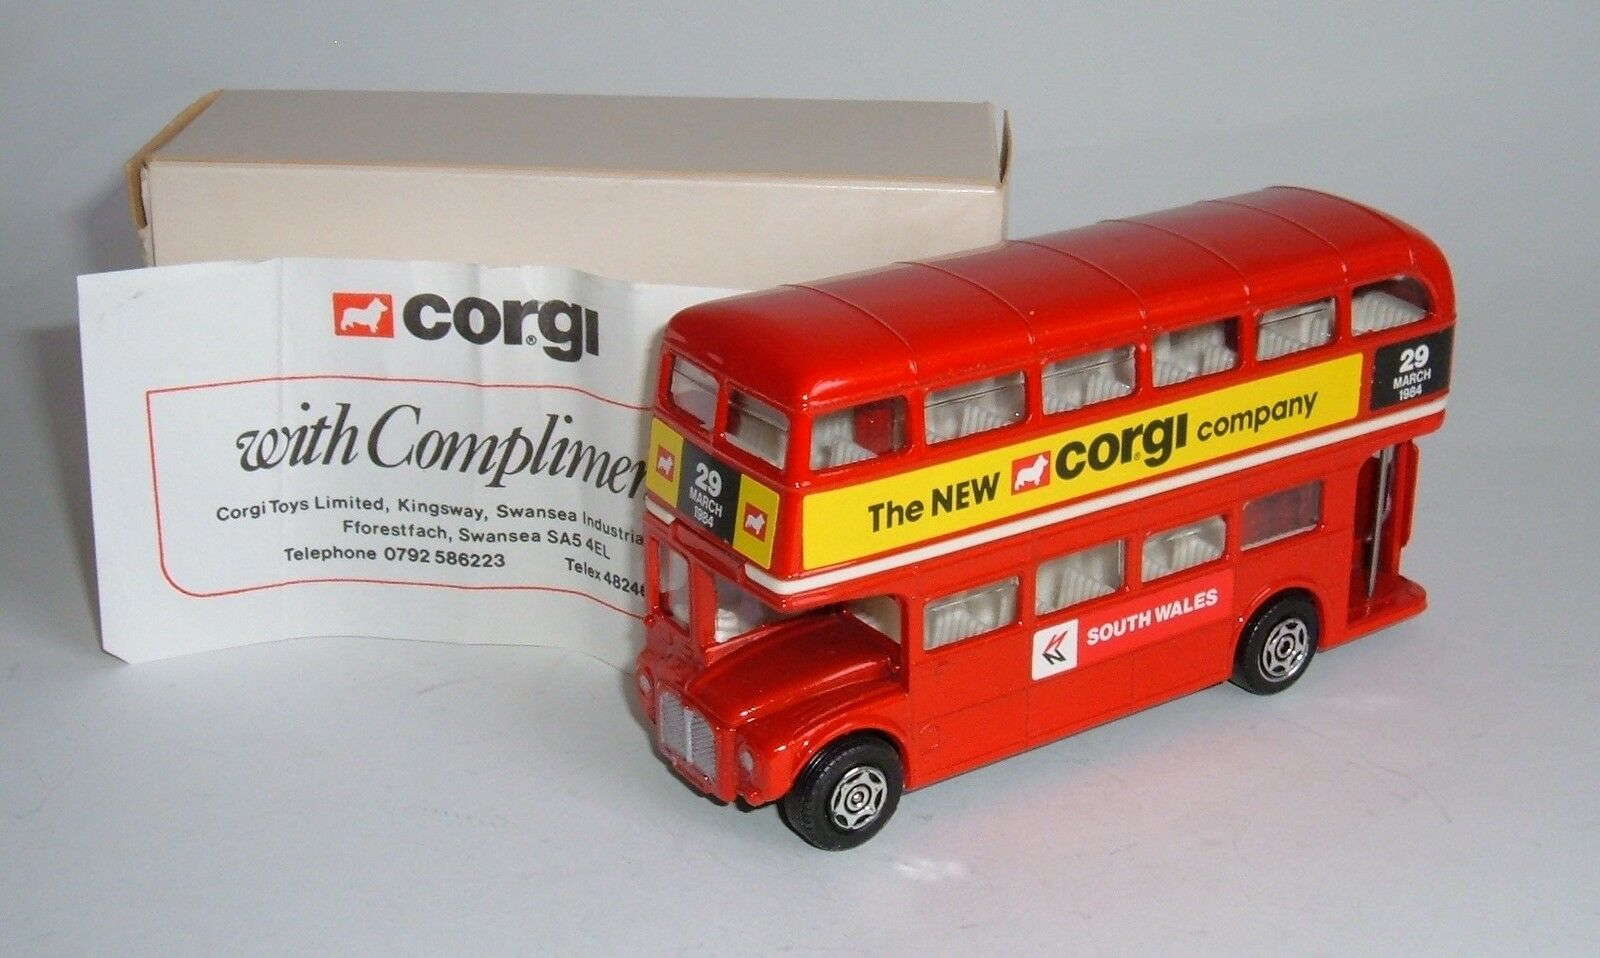 CORGI TOYS no 482, London Routemaster Bus -  The New CORGI Company , - SUPERBE.